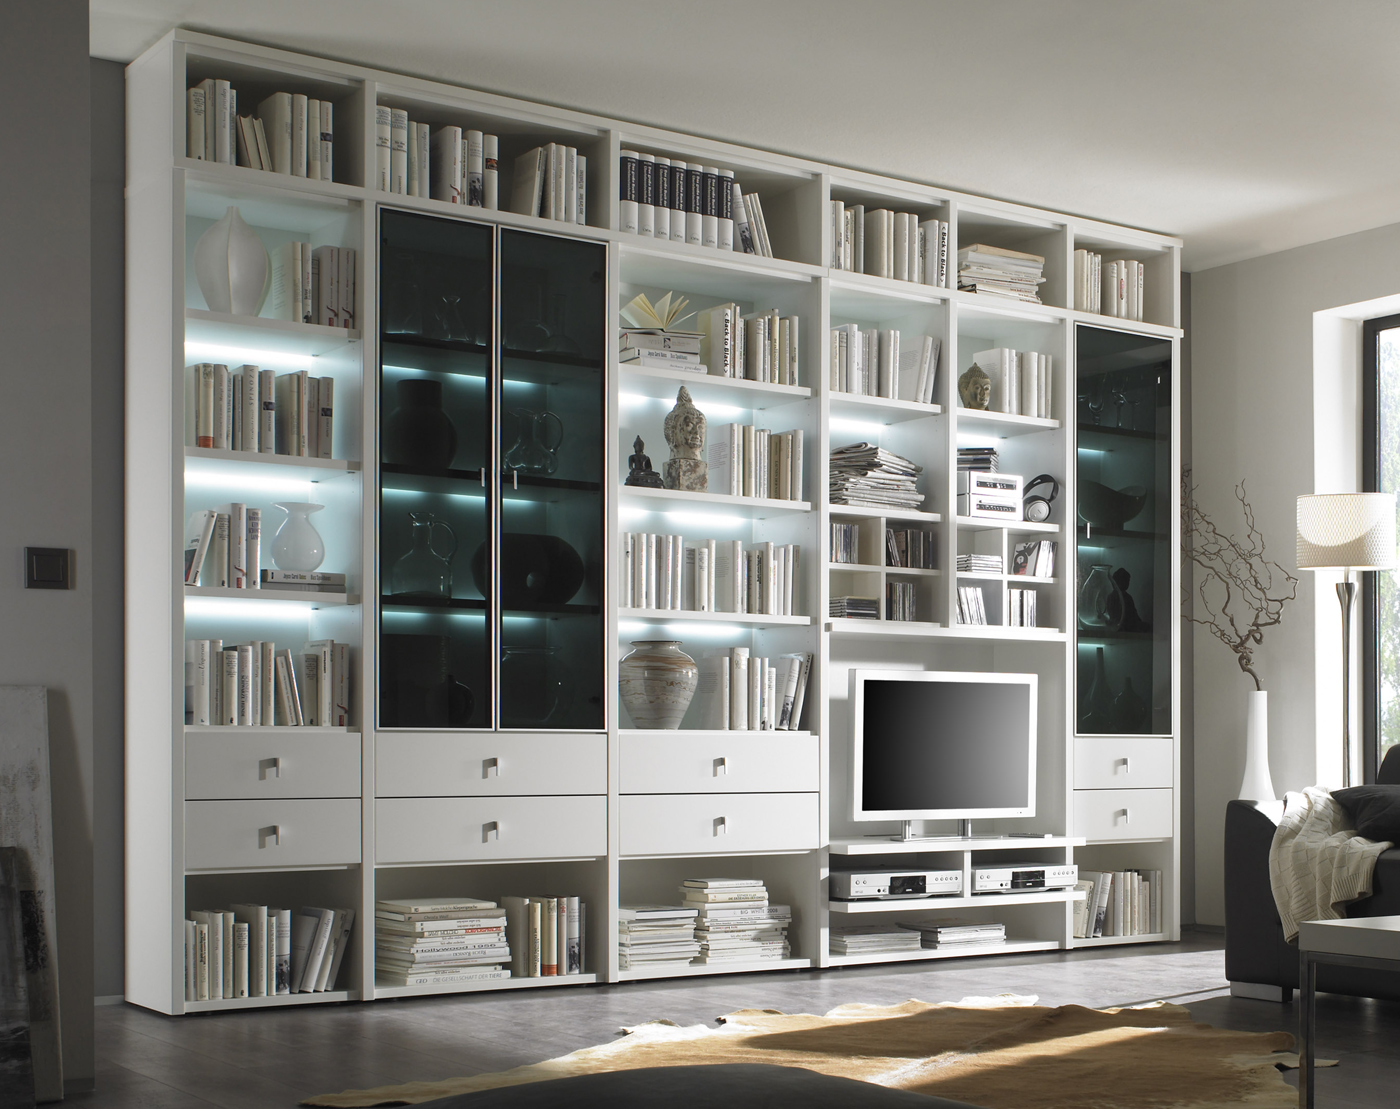 wohnwand b cherregal studio individuell planbar m belmeile24. Black Bedroom Furniture Sets. Home Design Ideas